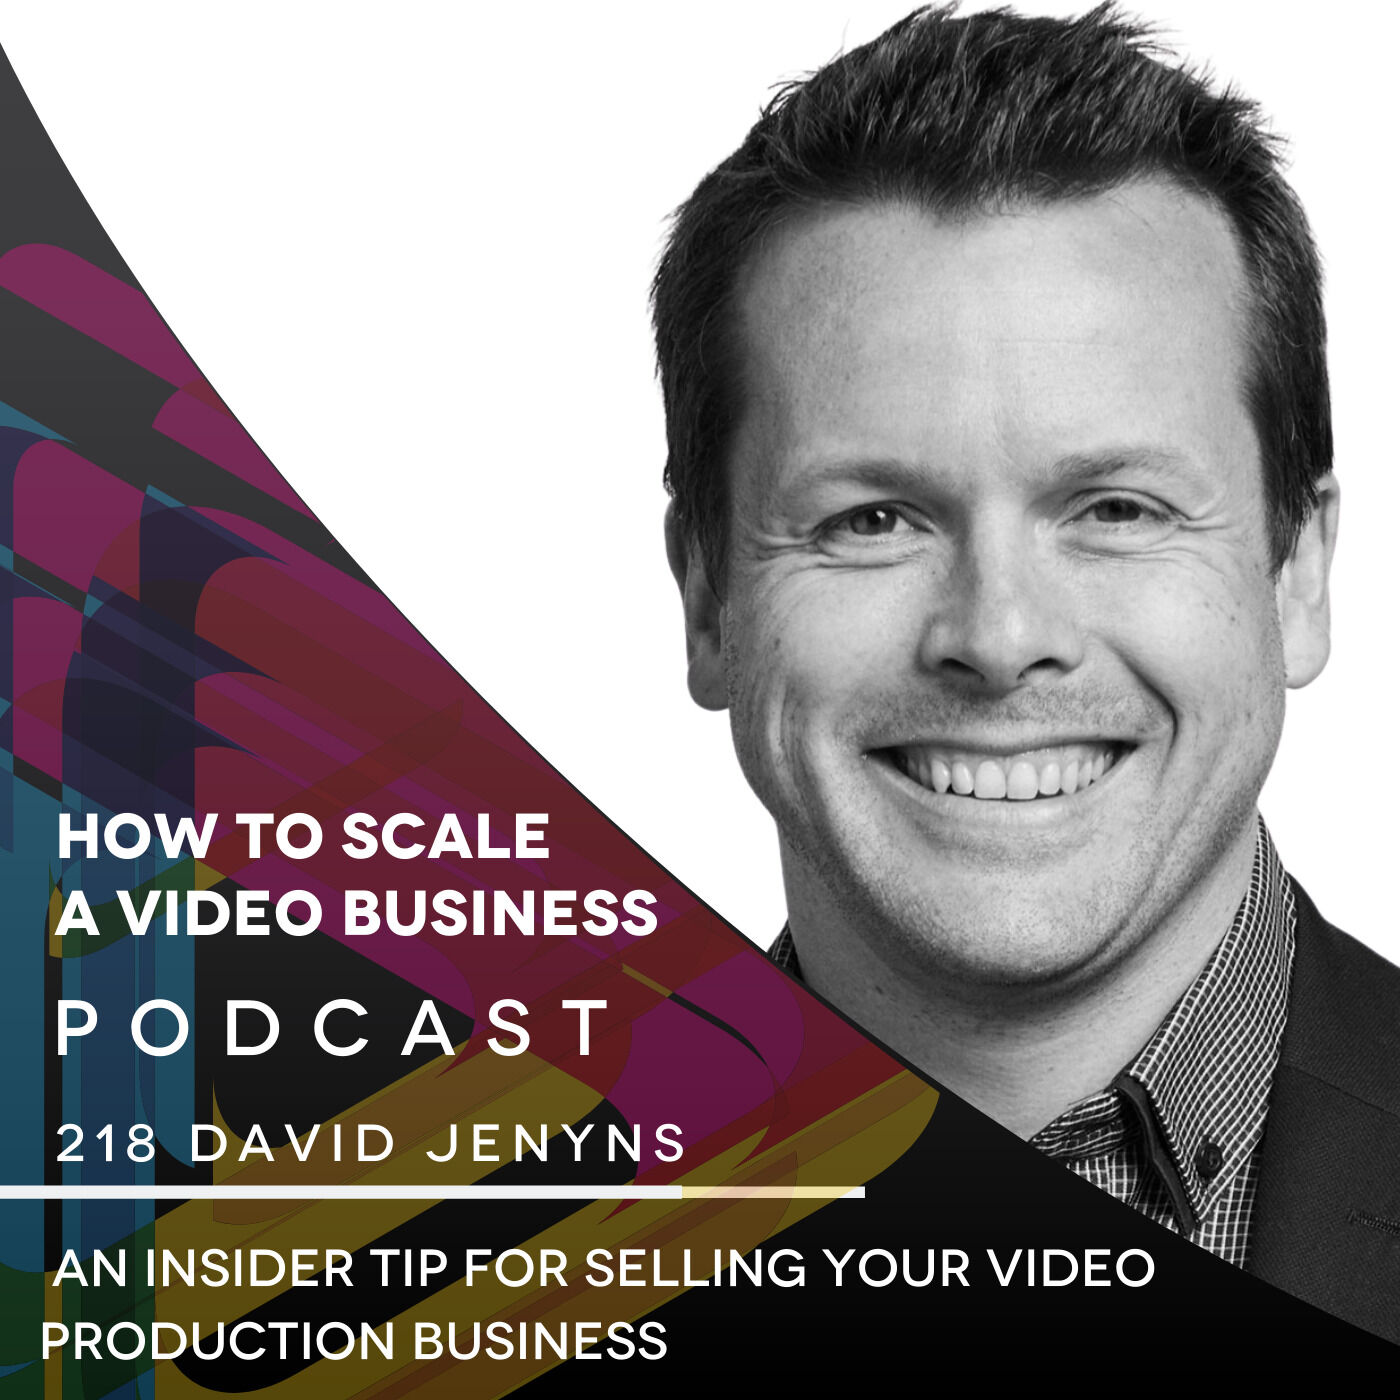 An insider tip for selling your video production business. EP #218 - Dave Jenyns